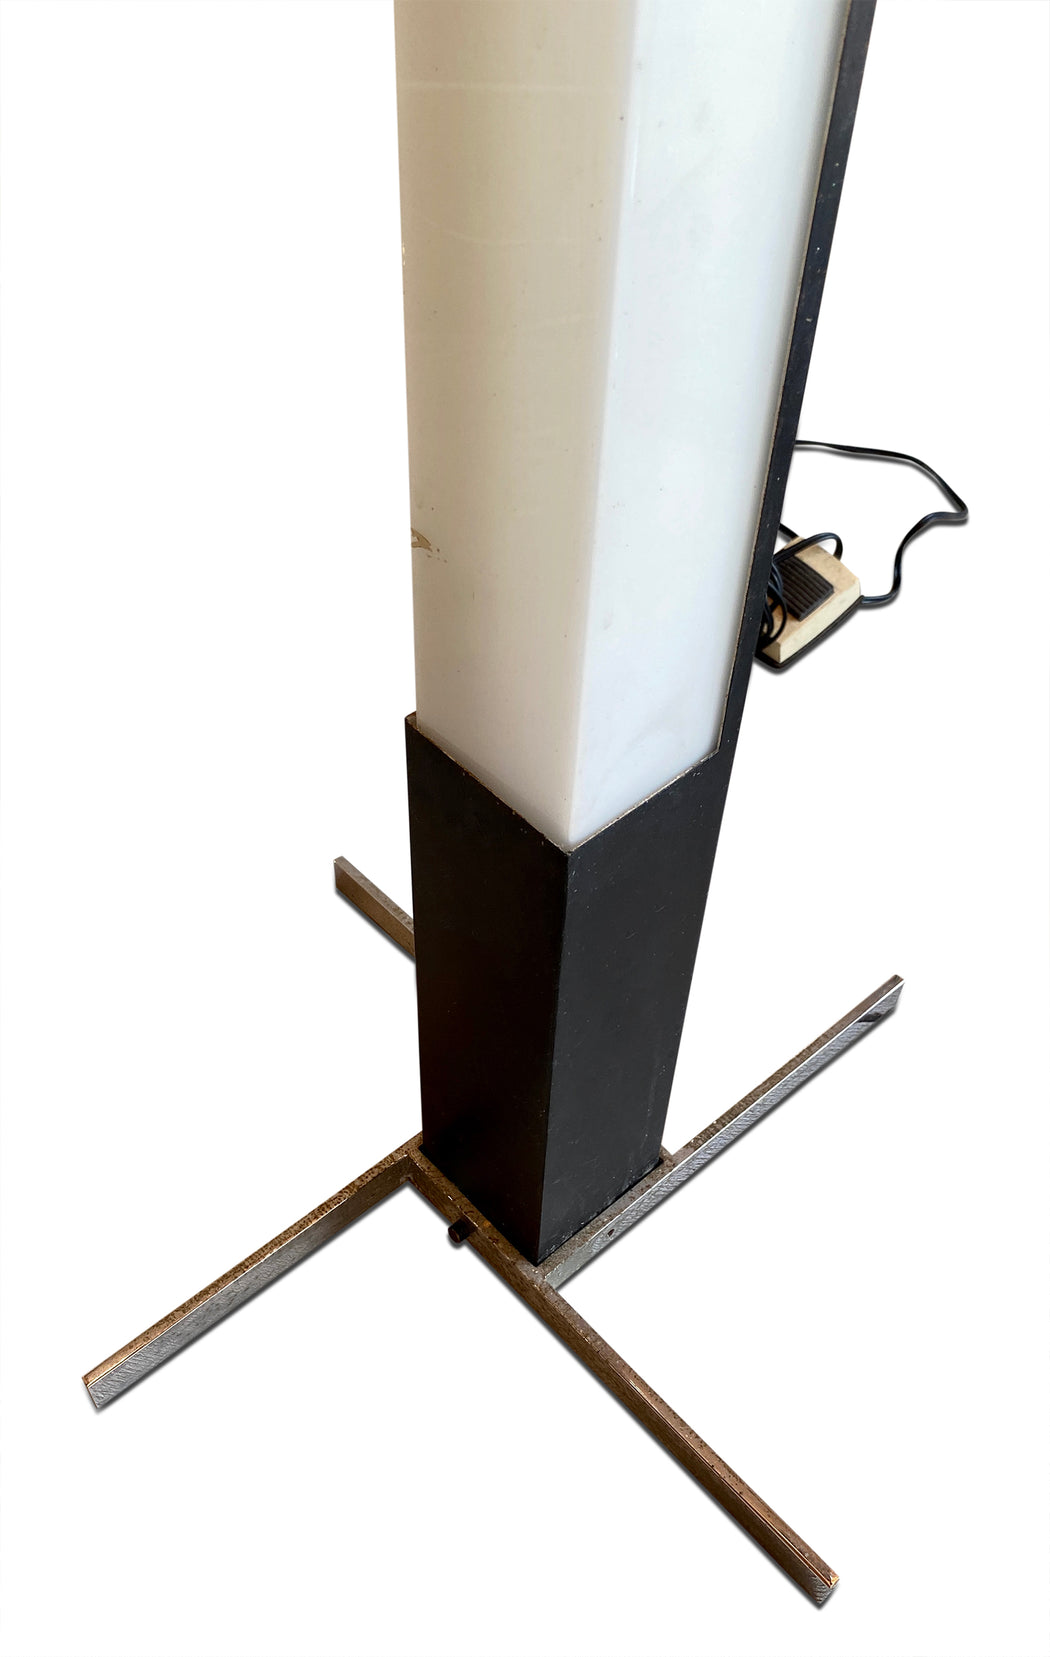 70's Italian Light Stick Floor Lamp